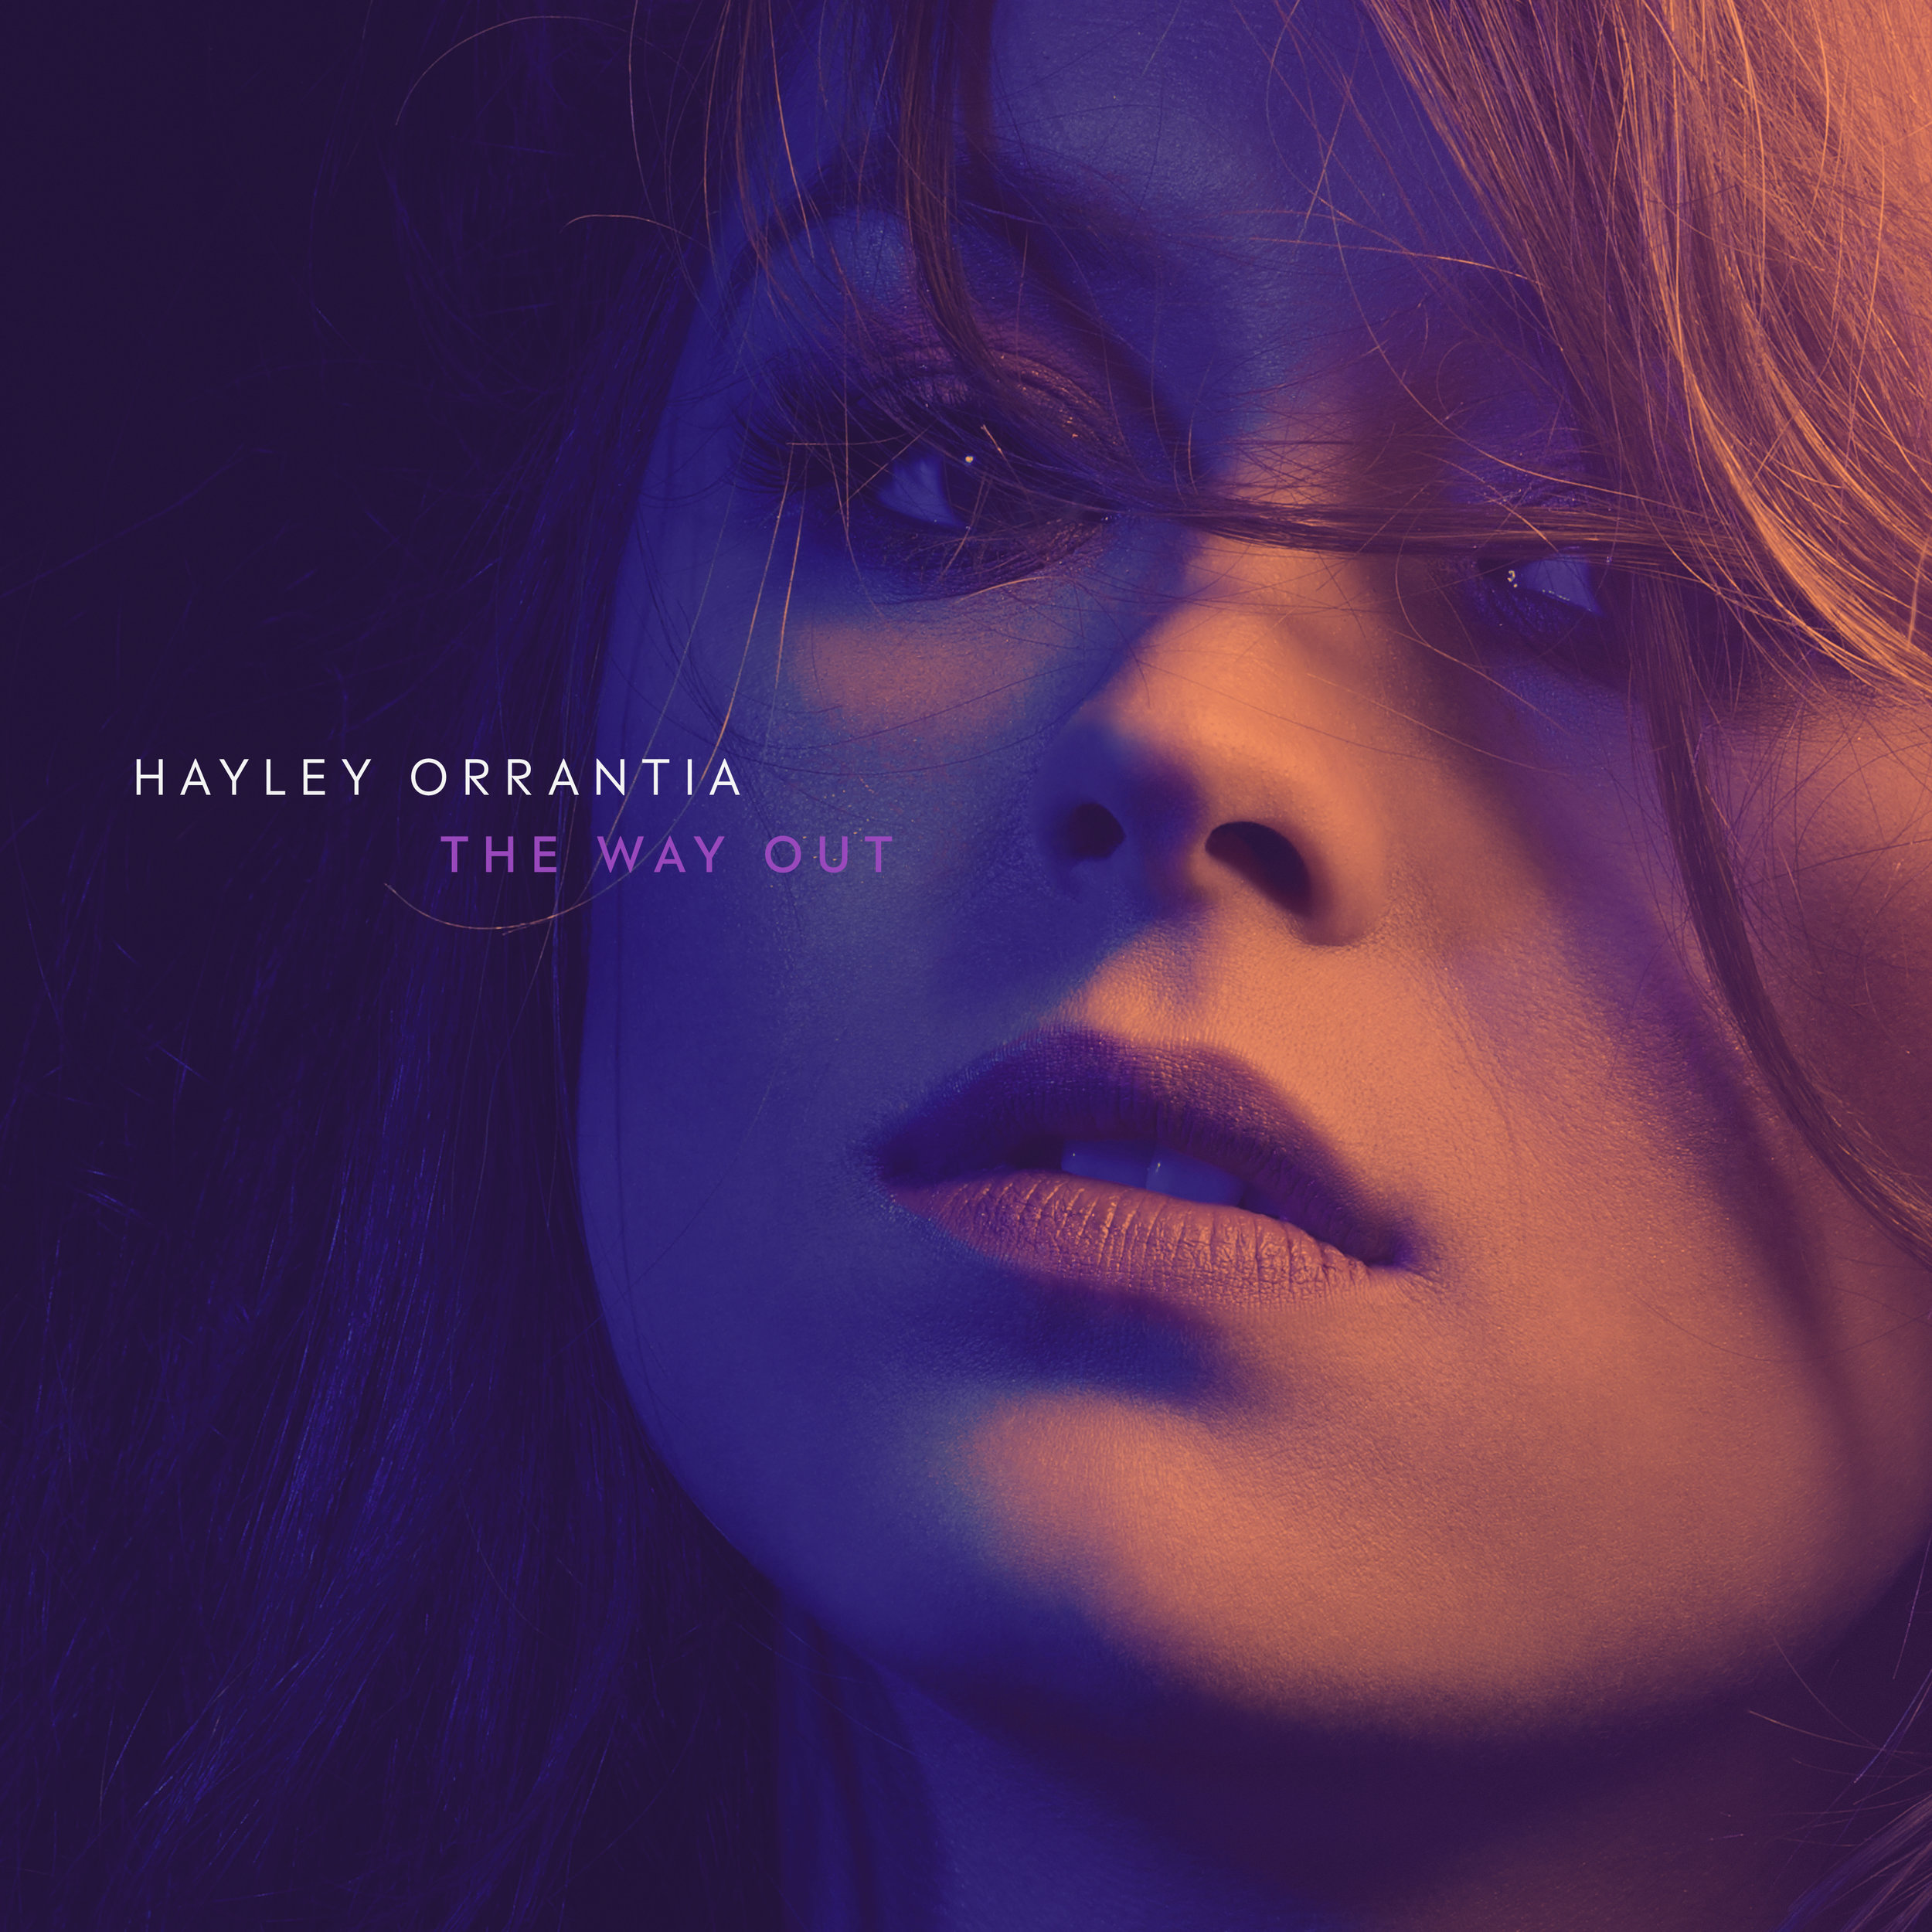 HayleyOrrantia_TWO_EP_COVER_creativelayers_FINAL.jpg